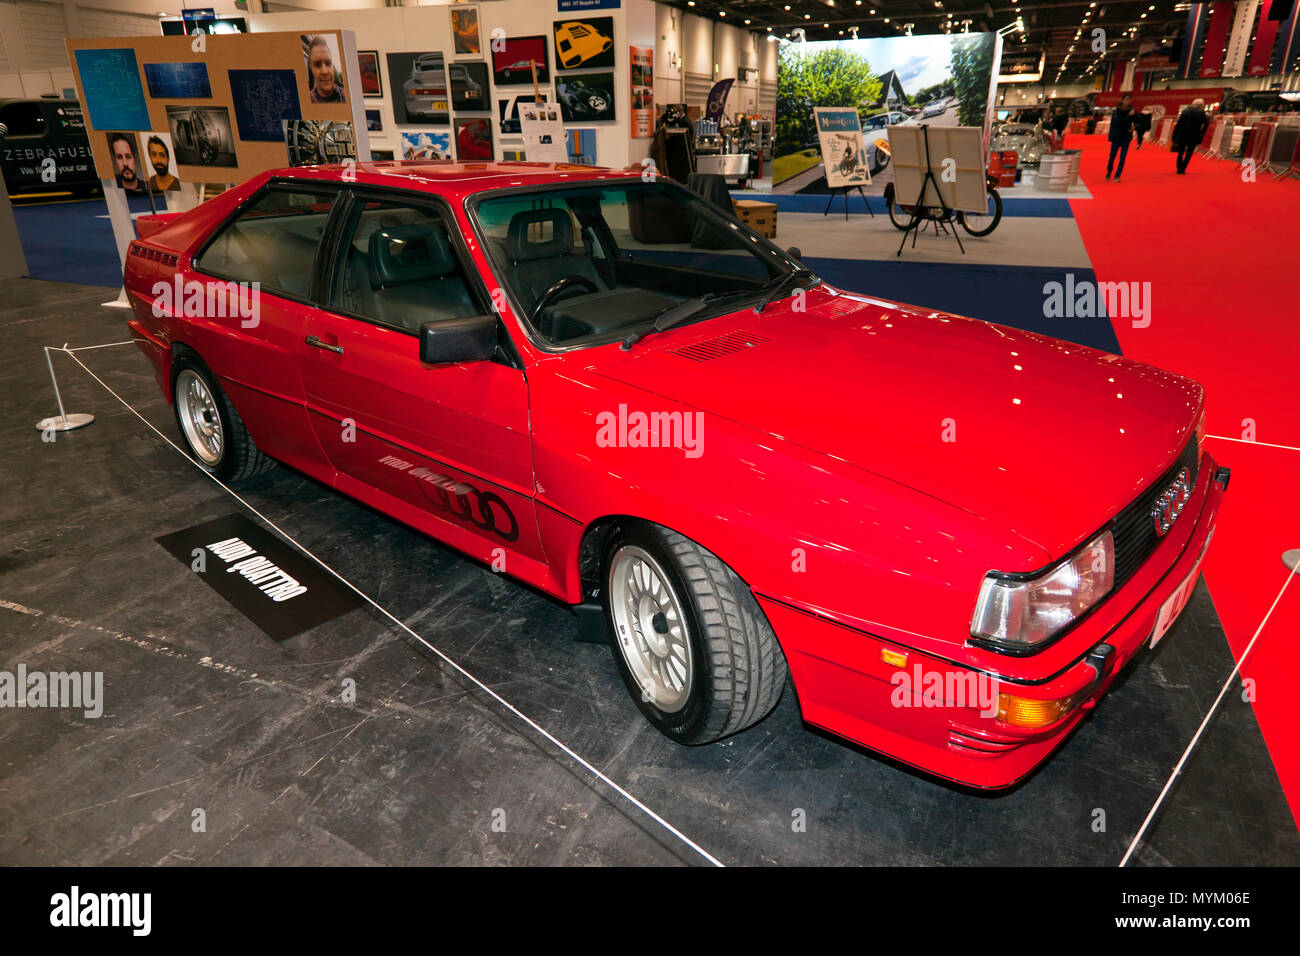 """Fire up the Quattro!.Philip Glenister curated a lineup of getaway cars, including this Audi, which he made famous in the TV series """"Ashes to Ashes"""". Stock Photo"""